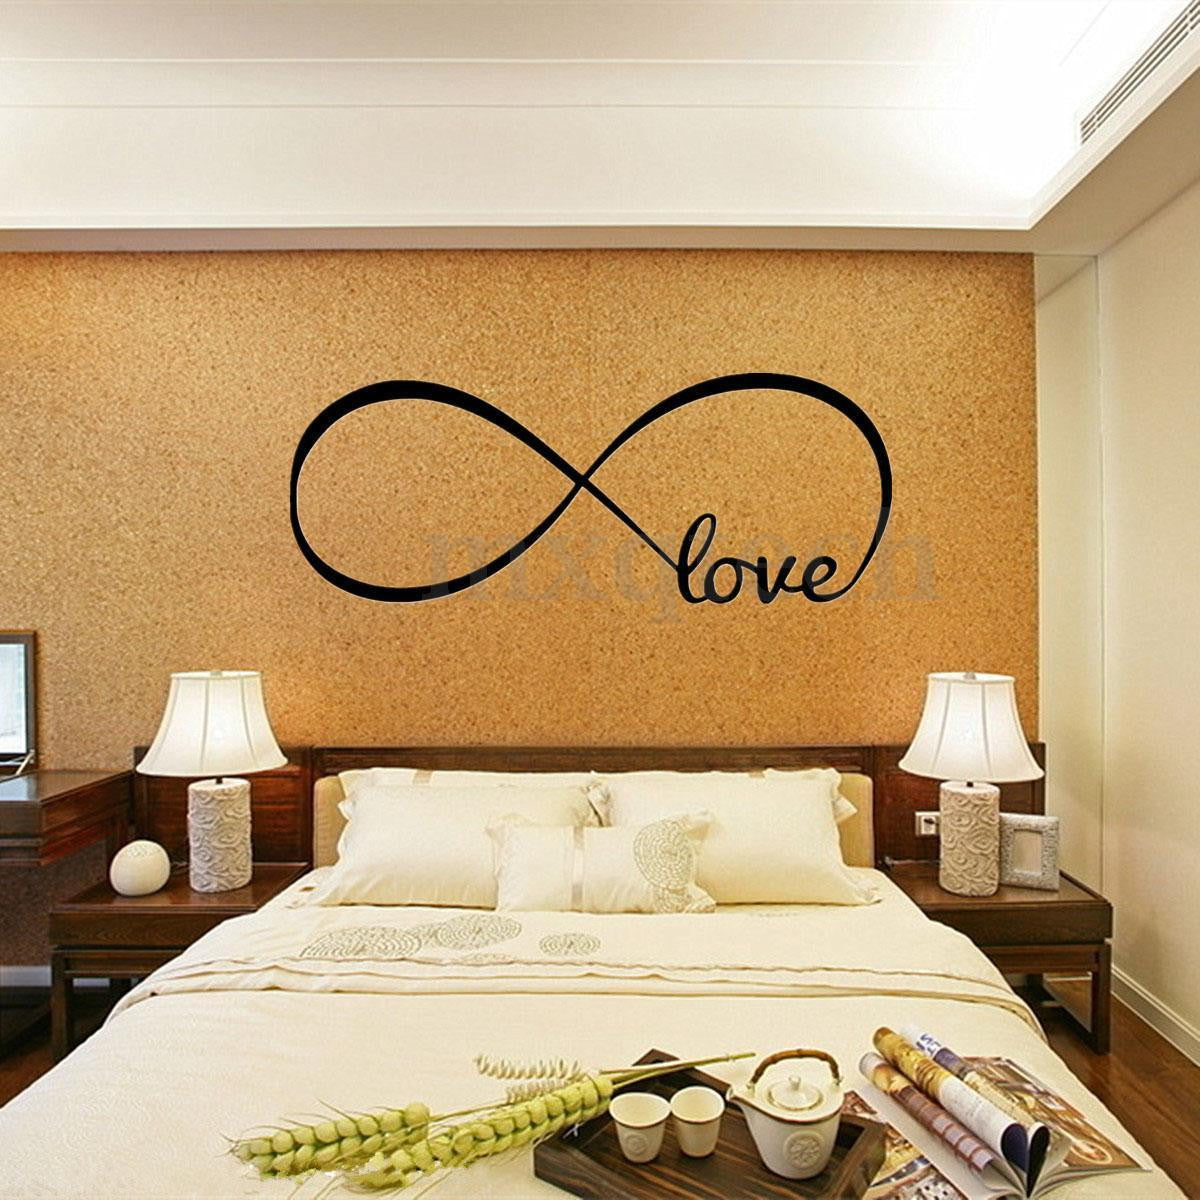 Love Bedroom Decor Love Removable Wall Stickers Art Vinyl Quote Decal Mural Home